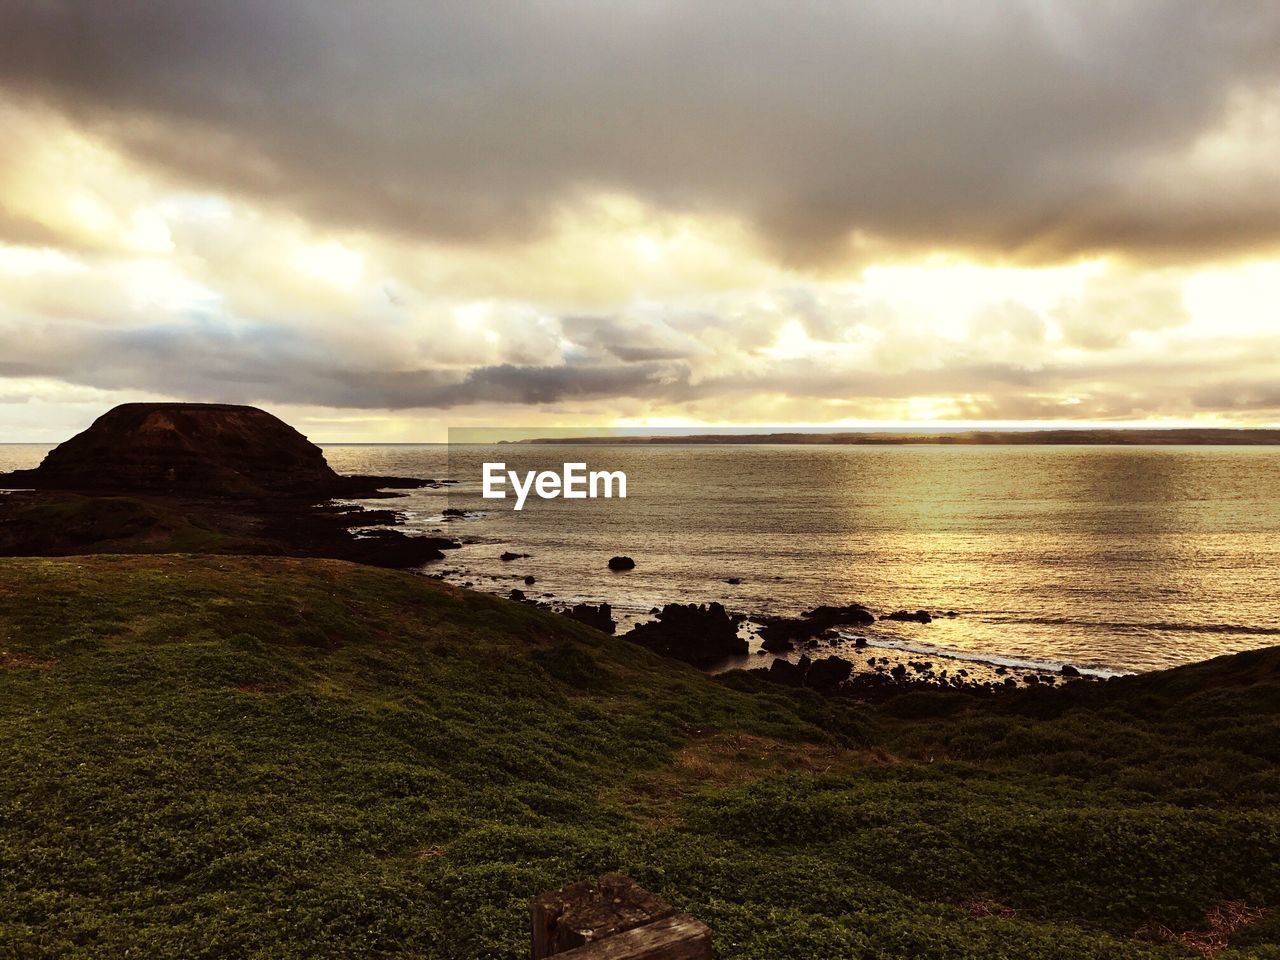 beauty in nature, nature, scenics, sea, tranquility, tranquil scene, cloud - sky, water, sky, horizon over water, grass, no people, outdoors, sunset, landscape, beach, day